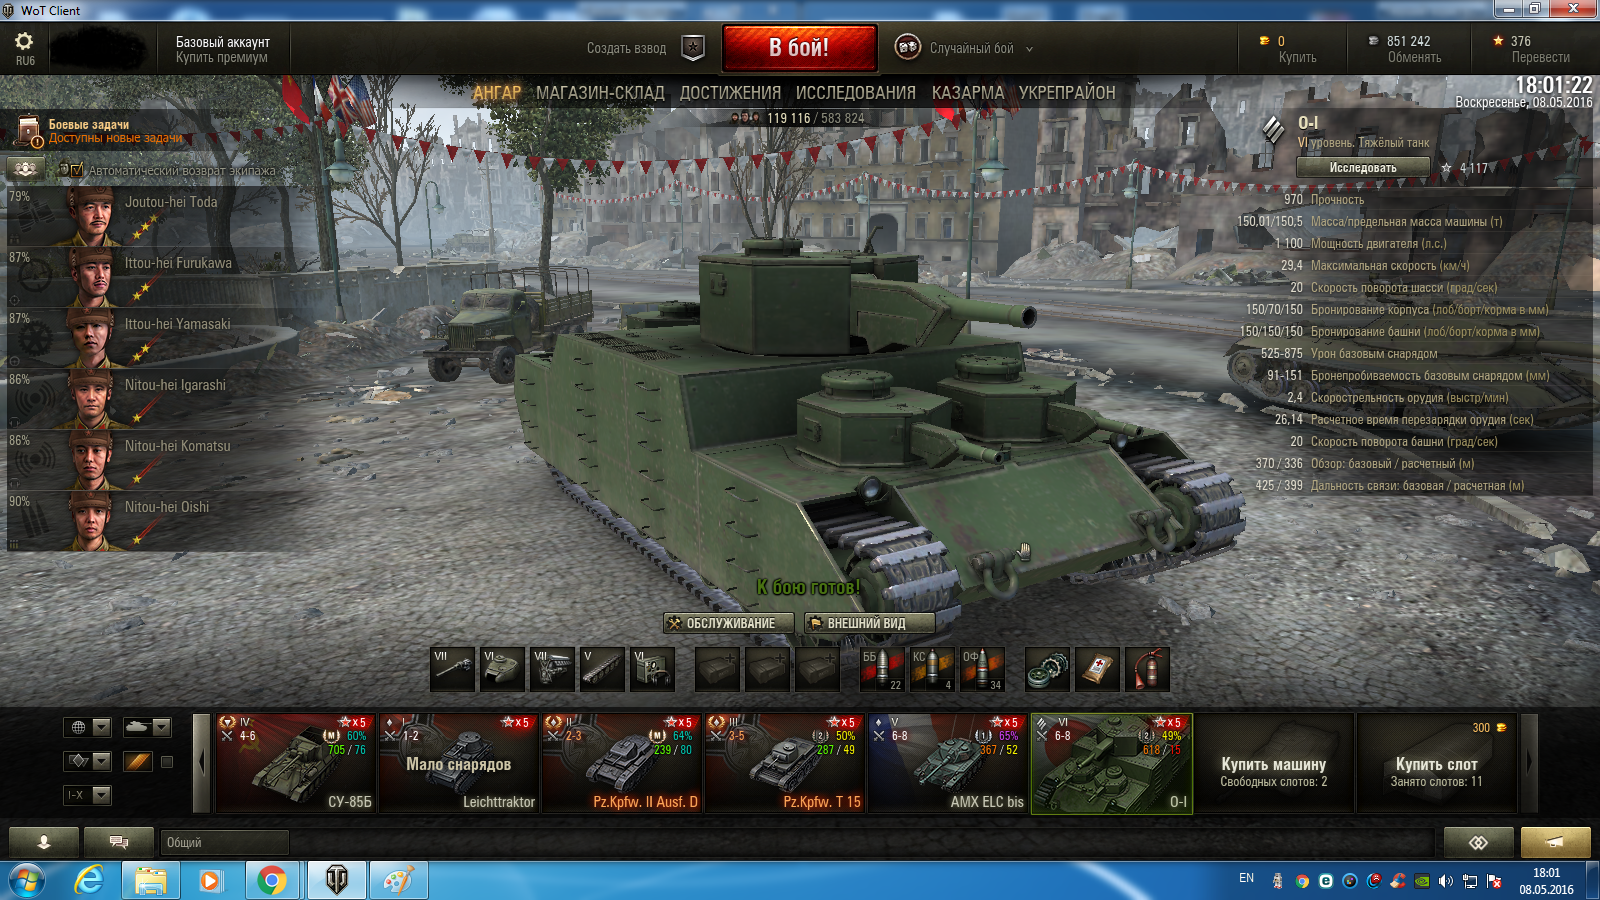 Personal Account World of Tanks WoT 61%, IP-6, O-I